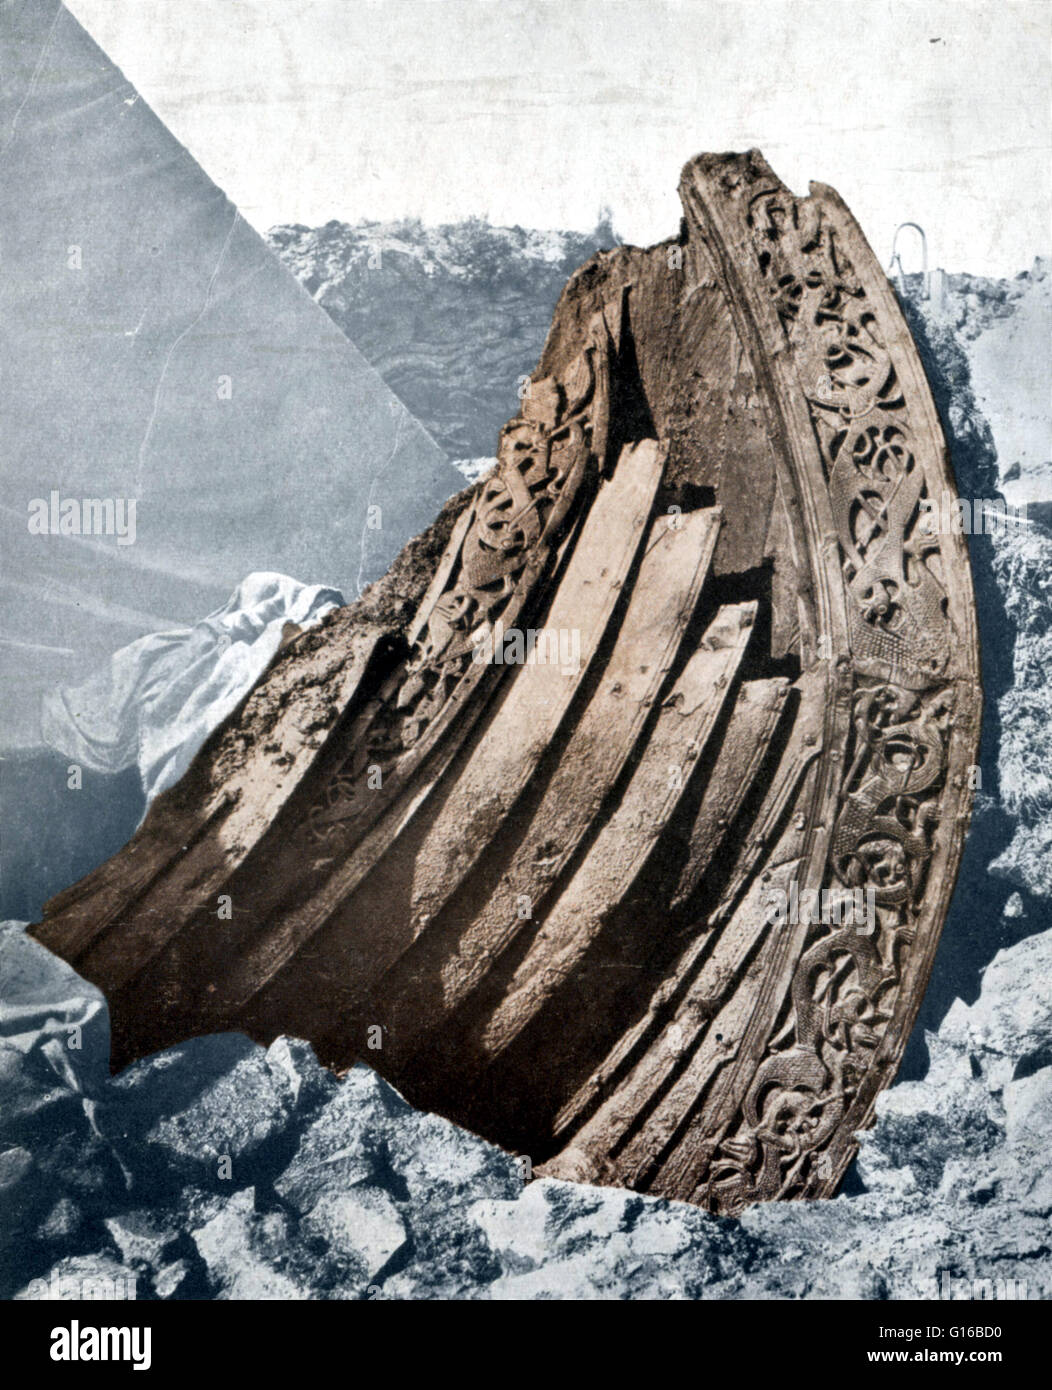 the oseberg ship is a well preserved viking ship discovered in a